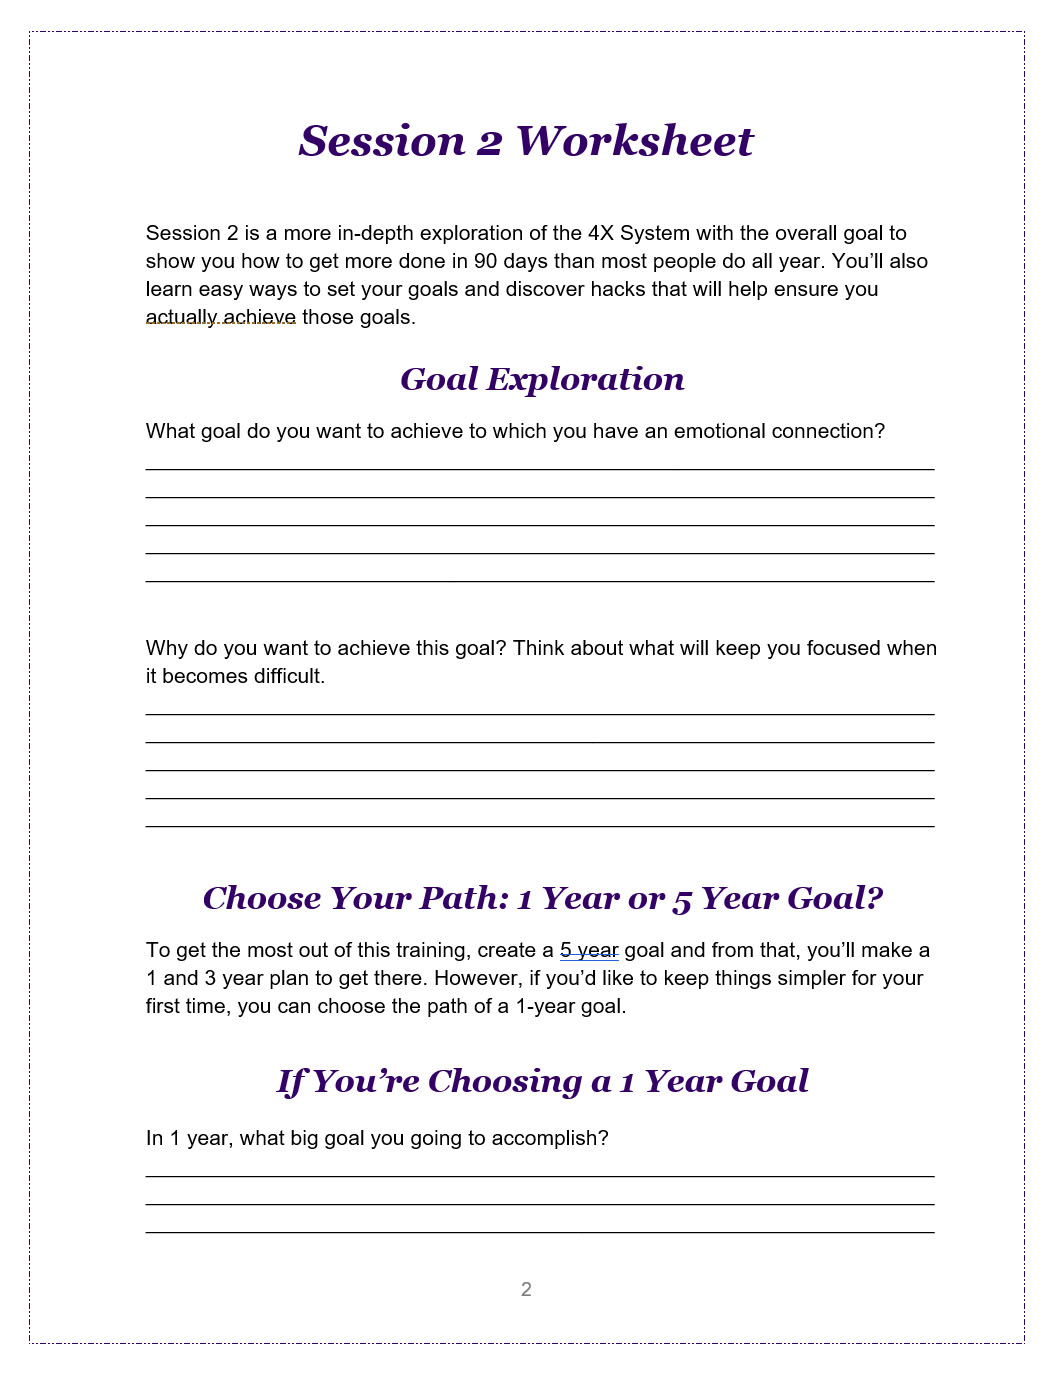 worksheet Stand And Deliver Worksheet using printables to boost conversions and sales the worksheet helps student apply what they learned in this session their own lives so can start achieving big goals